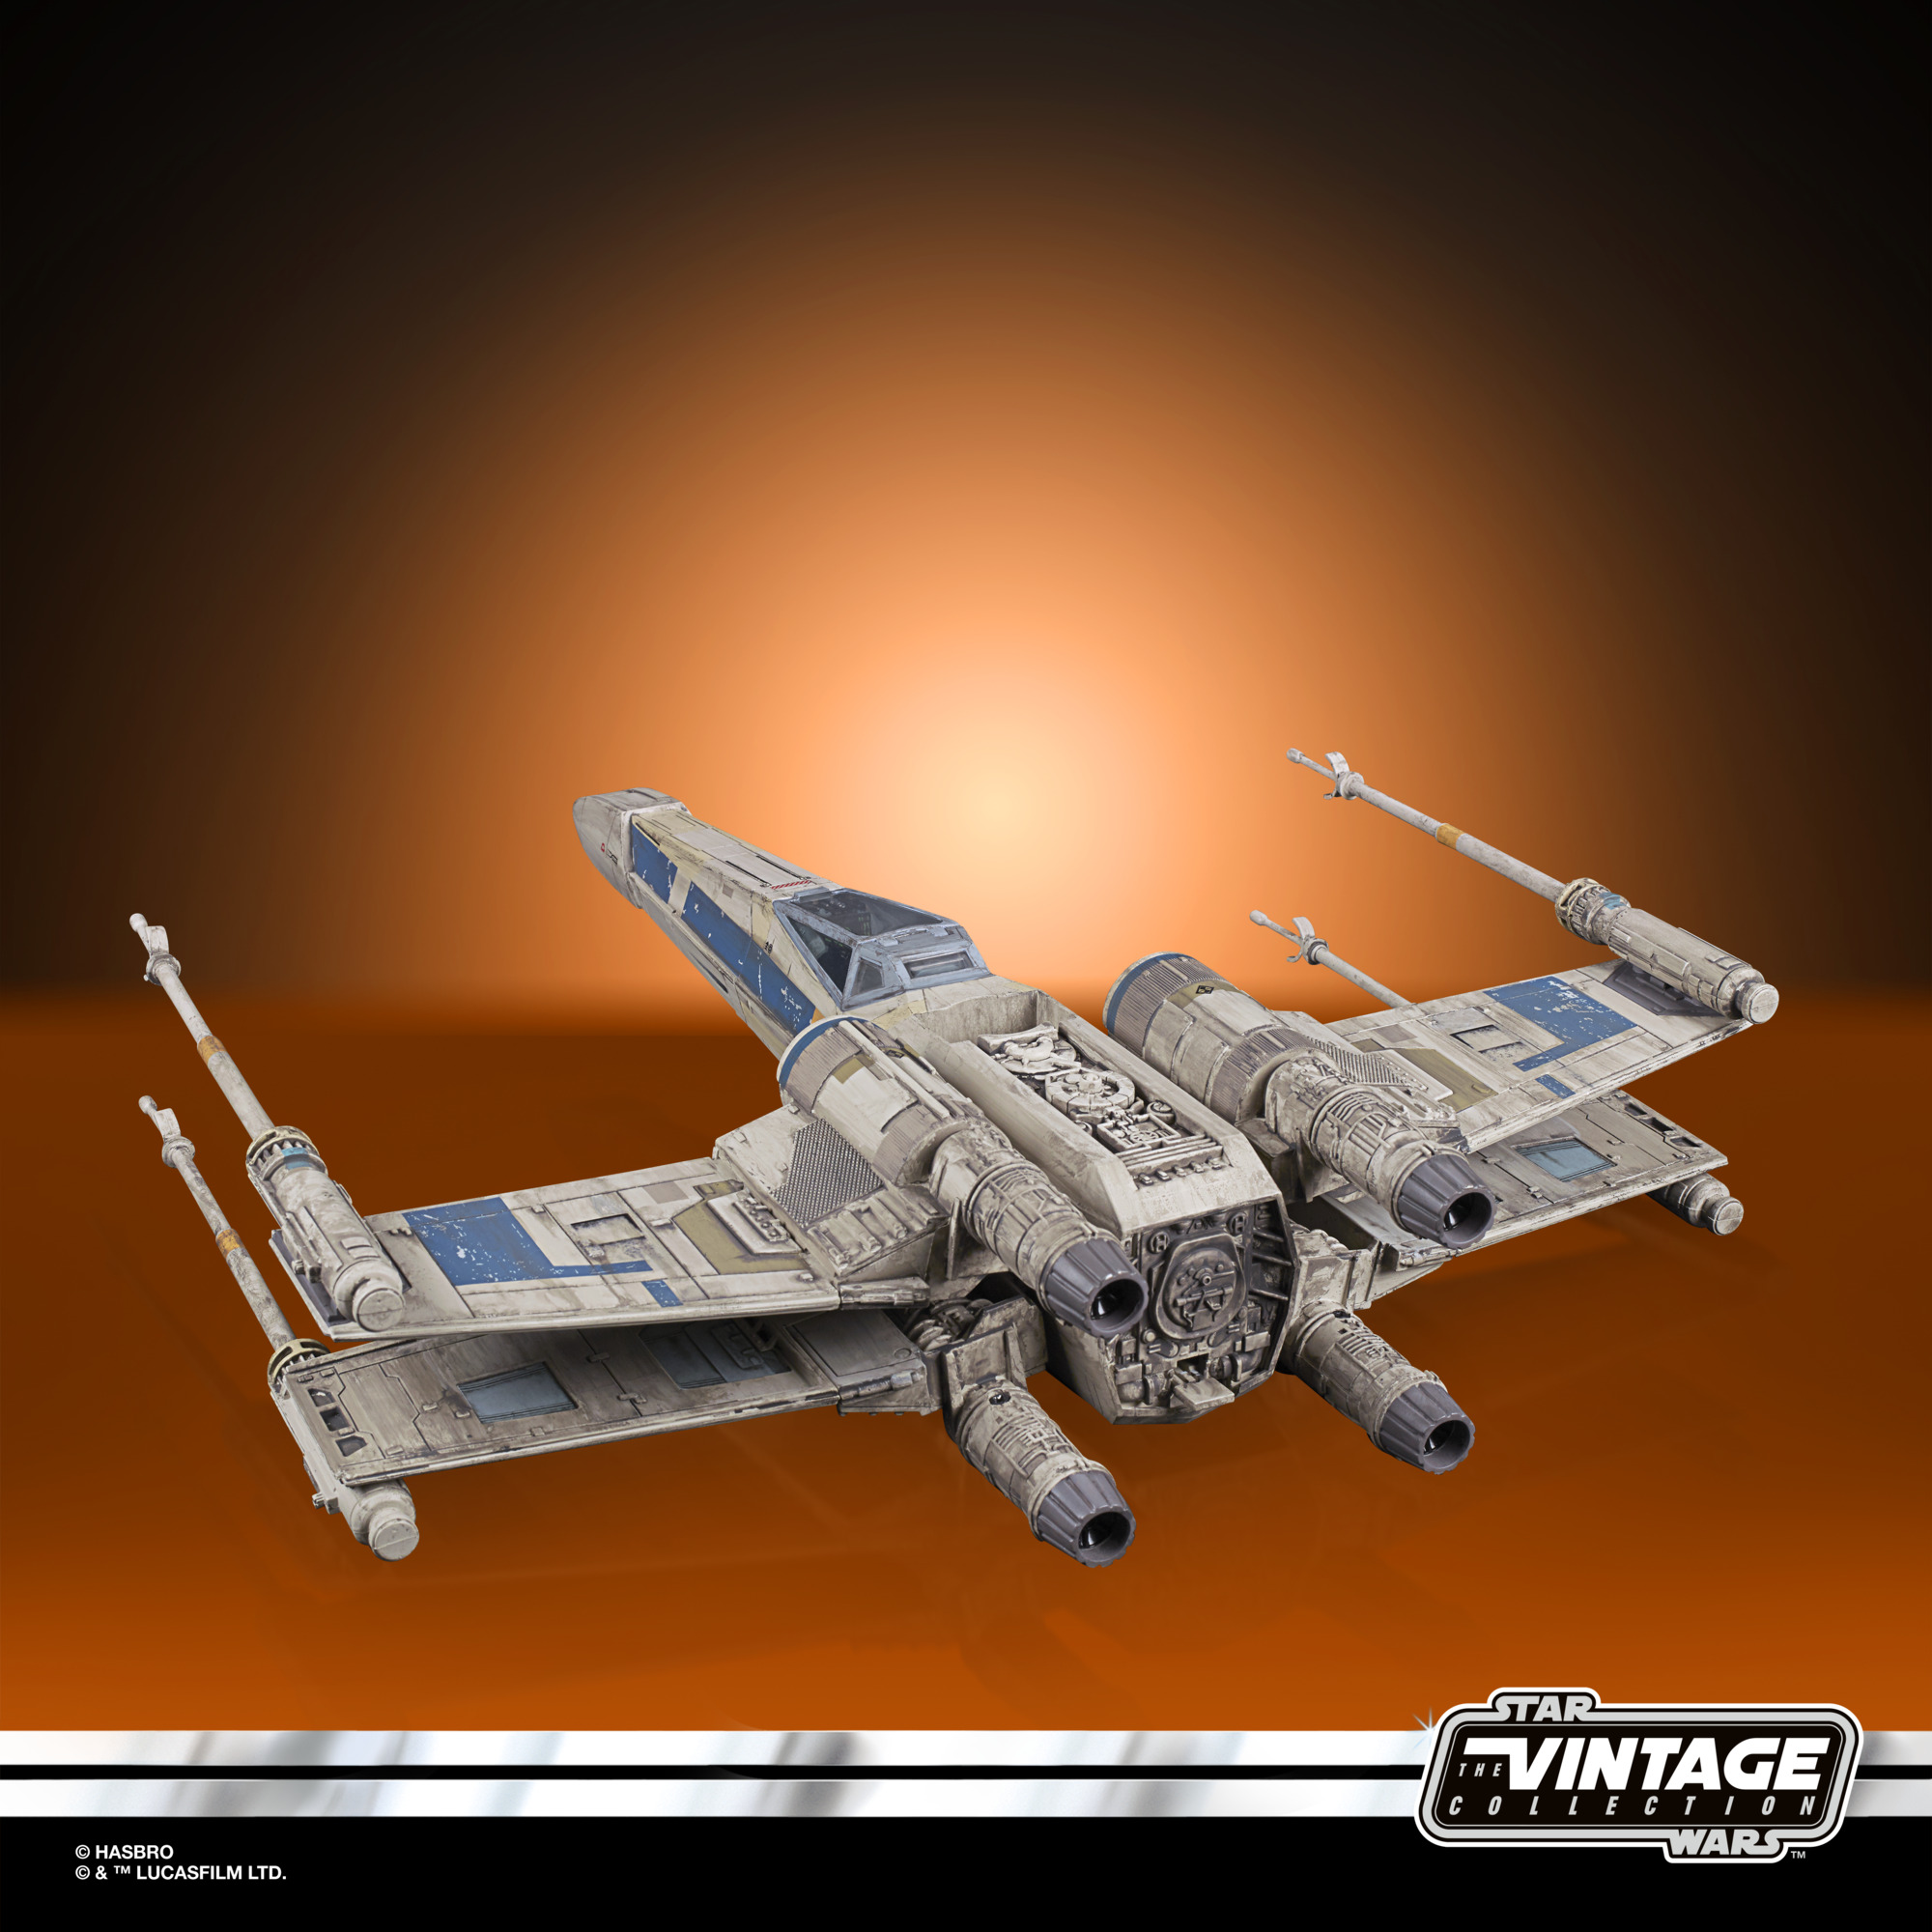 Star Wars Rogue One The Vintage Collection Fahrzeug mit Figur Antoc Merrick's X-Wing Fighter HASF2885 5010993898985